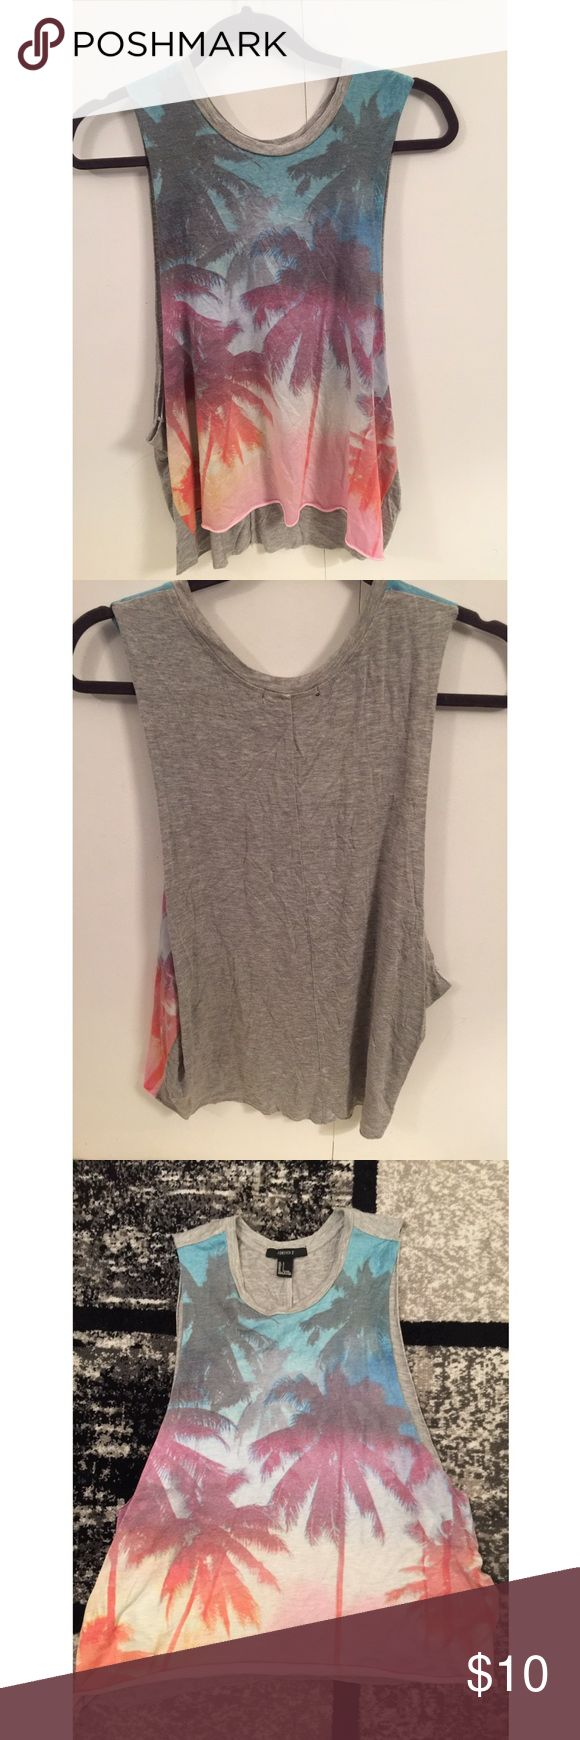 Forever 21 muscle tank Super cute palm tree muscle tank top from forever 21. New condition. Forever 21 Tops Muscle Tees